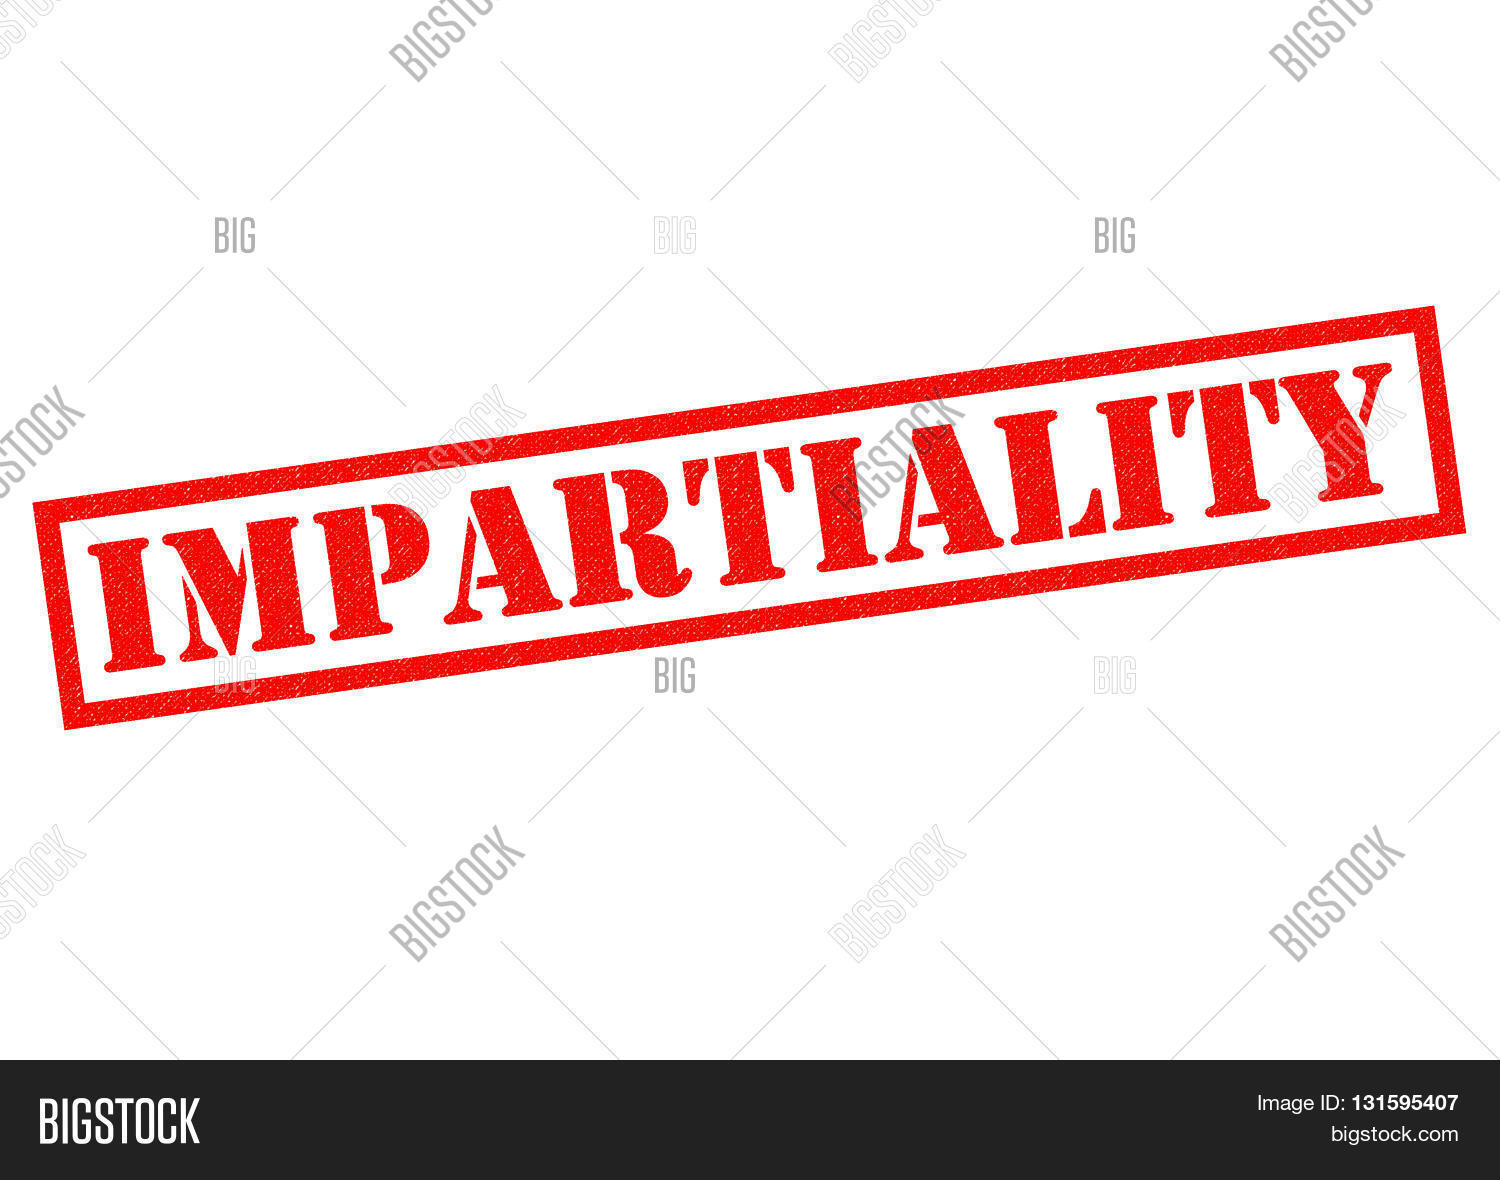 IMPARTIALITY Red Image & Photo (Free Trial) | Bigstock